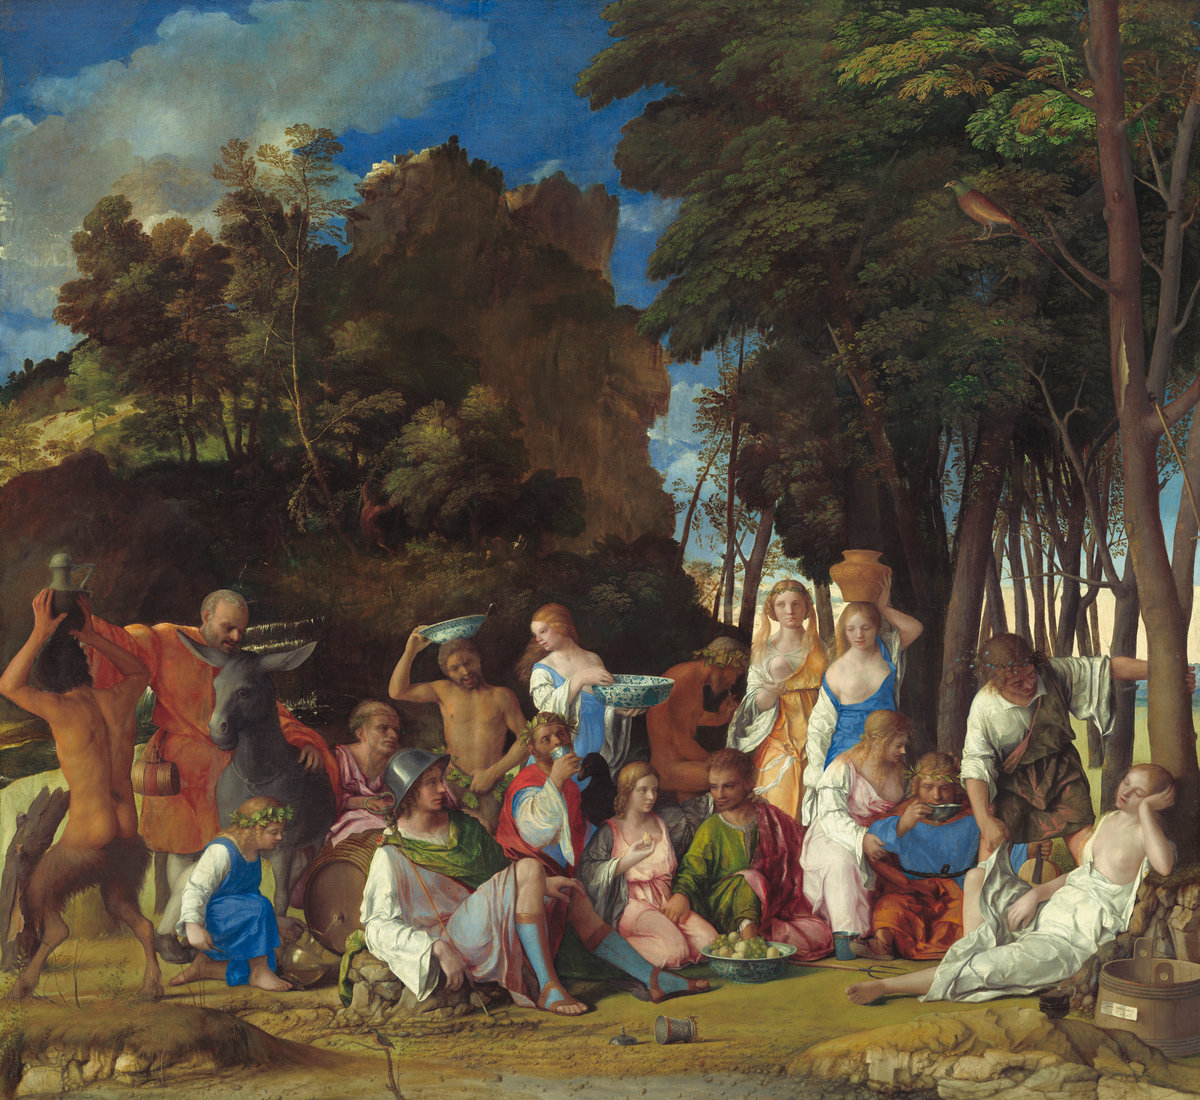 The Feast of the Gods, by Giovanni Bellini and Titian. / Image: National Gallery of Art